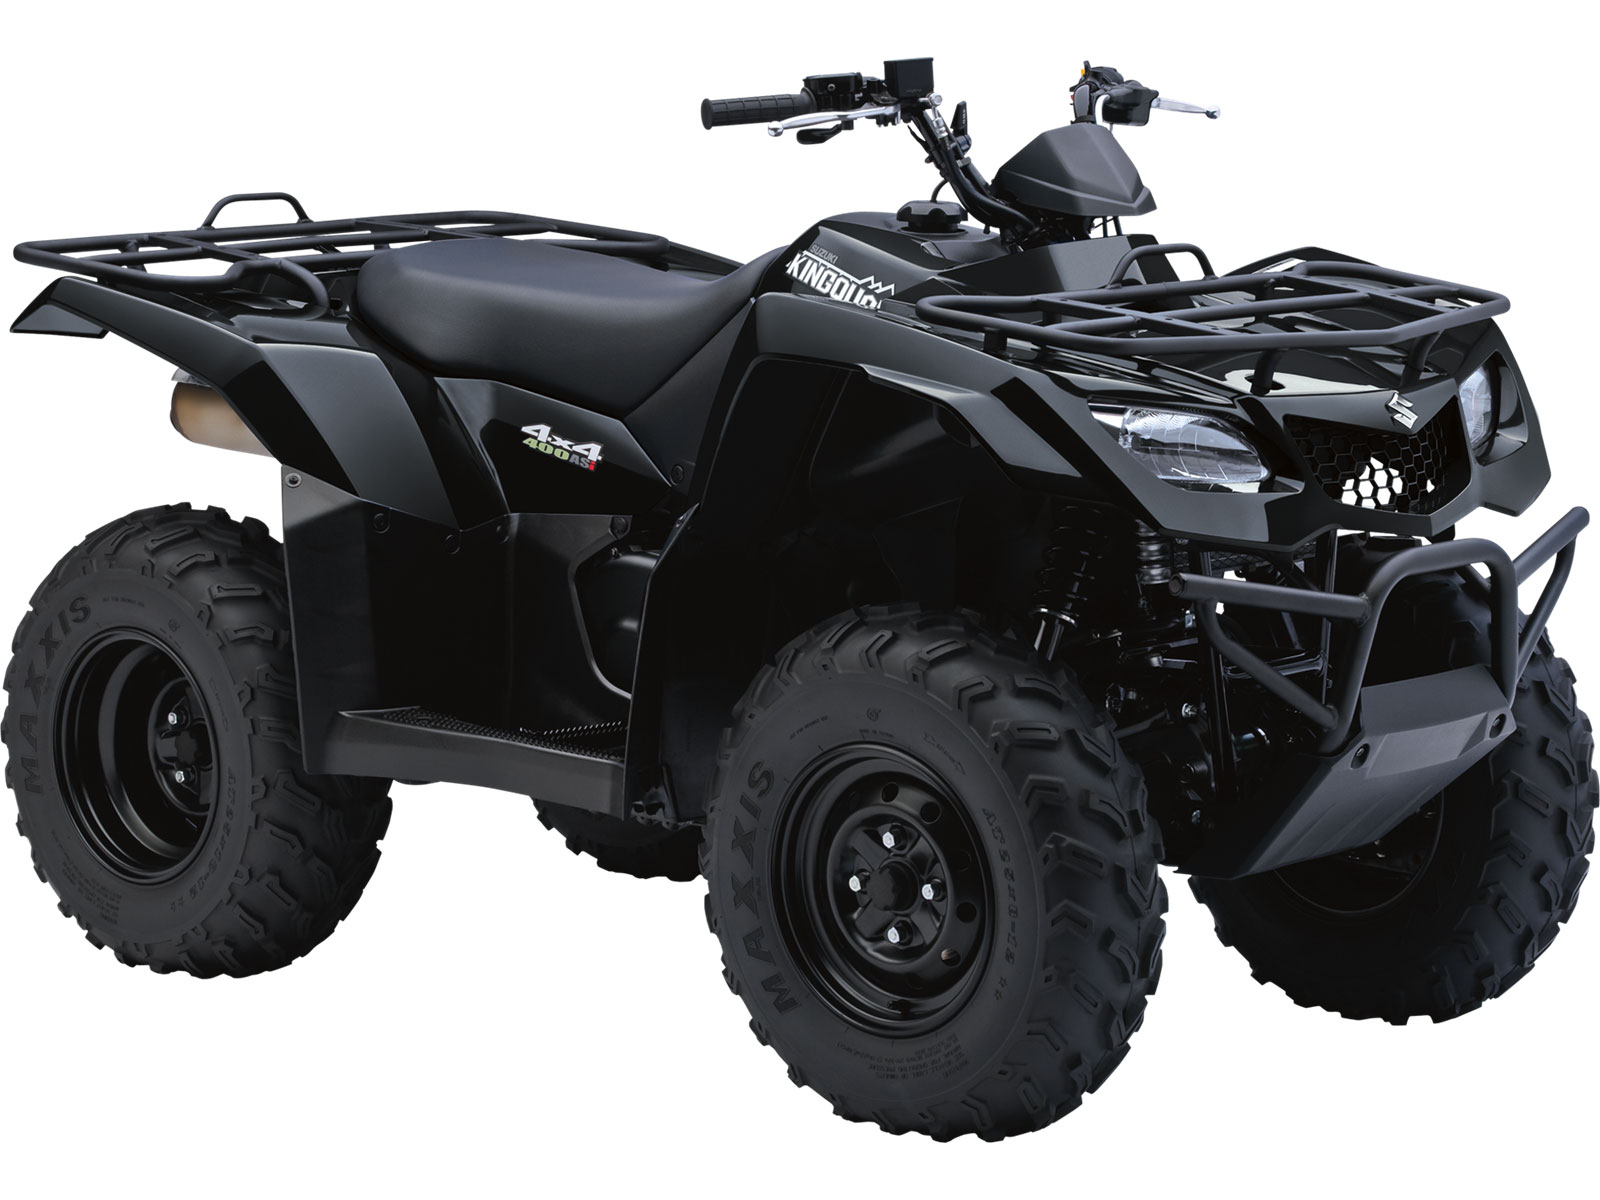 suzuki kingquad 400asi specs 2010 2011 autoevolution. Black Bedroom Furniture Sets. Home Design Ideas